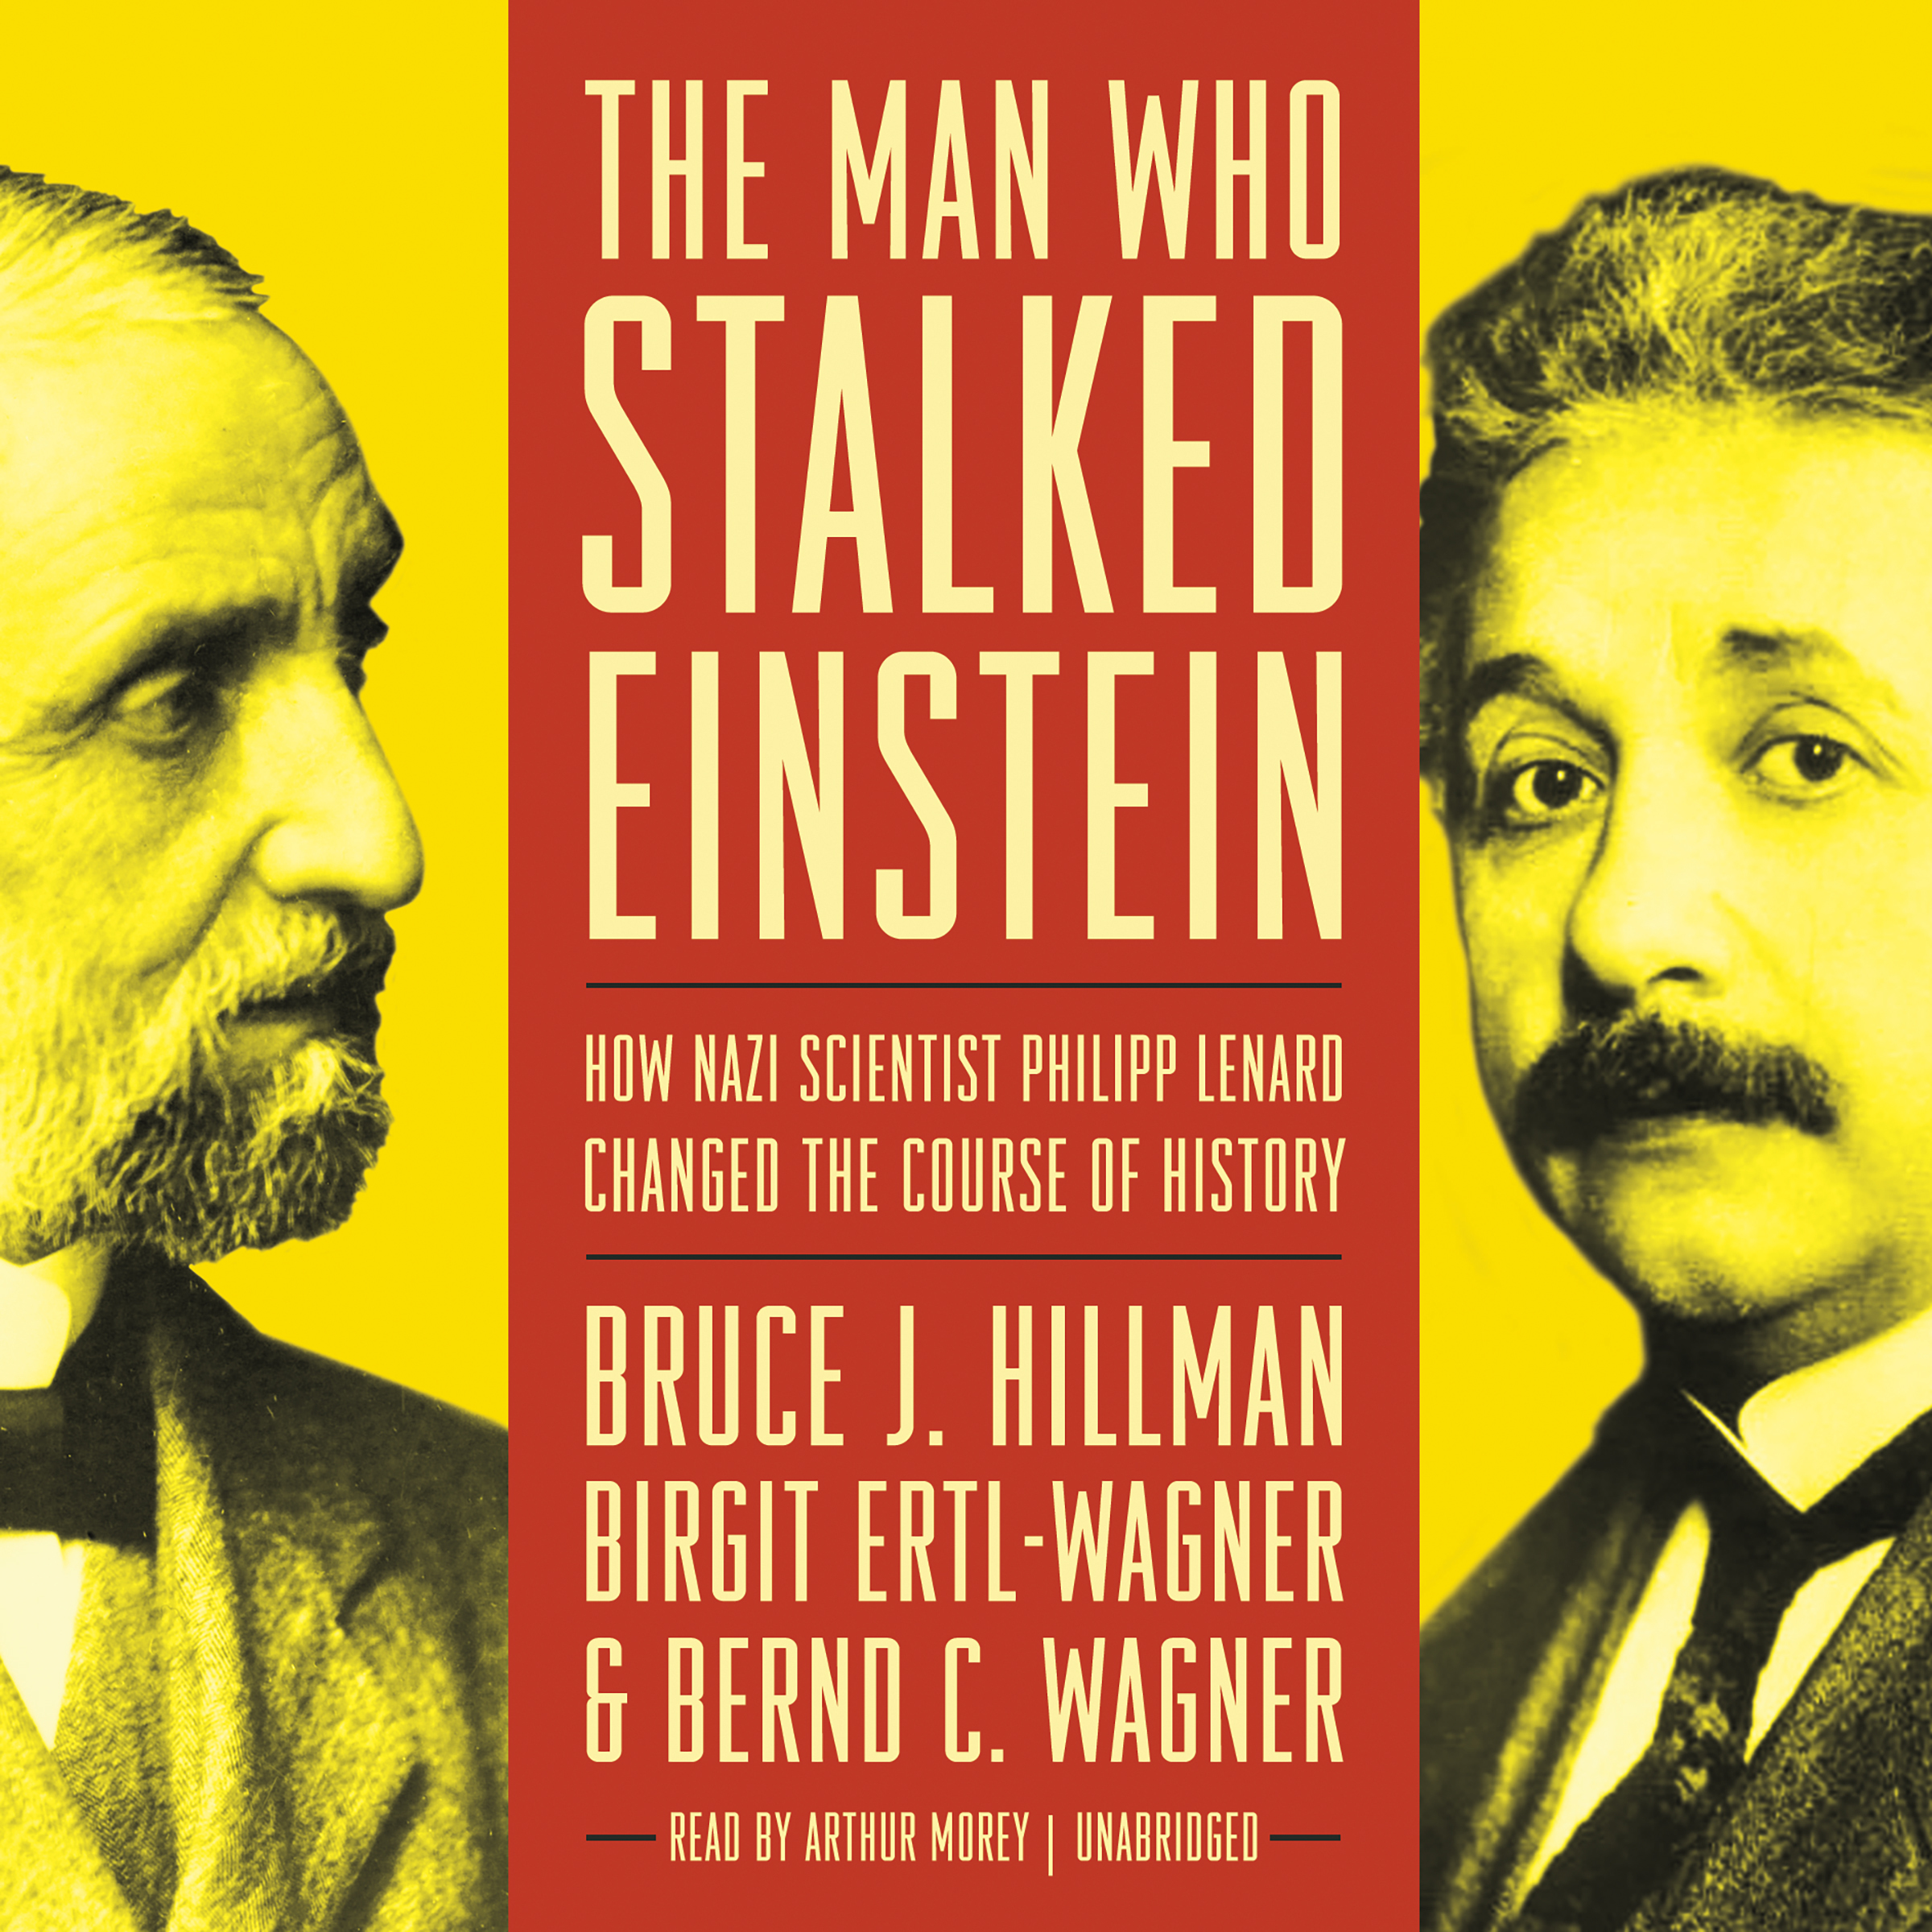 Printable The Man Who Stalked Einstein: How Nazi Scientist Philipp Lenard Changed the Course of History Audiobook Cover Art